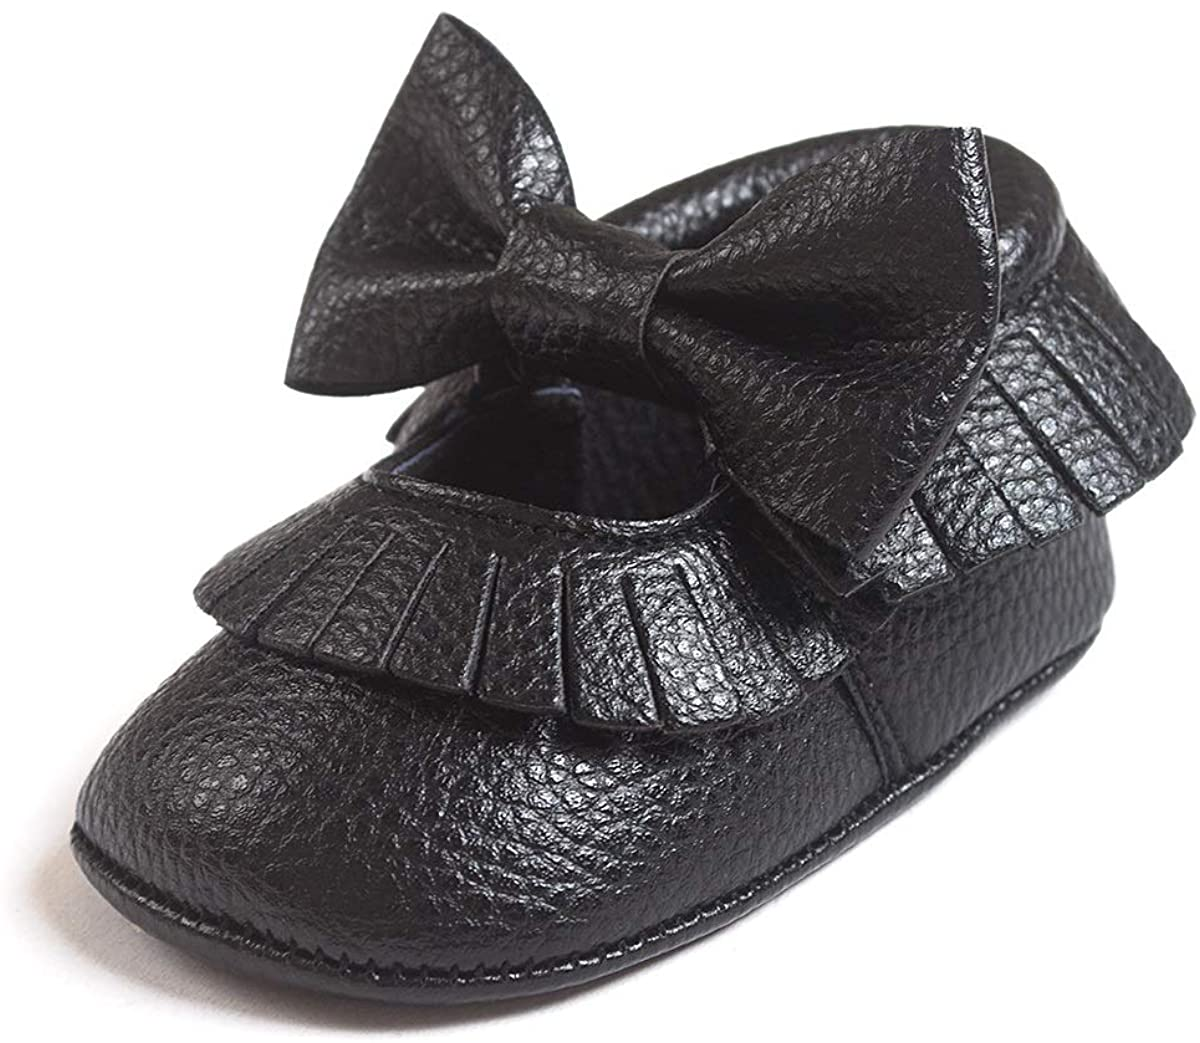 Infant Toddler Baby Girls Soft Sole Tassel Bowknot Moccasins Crib Shoes Mary Jane Flat Shoes Slippers